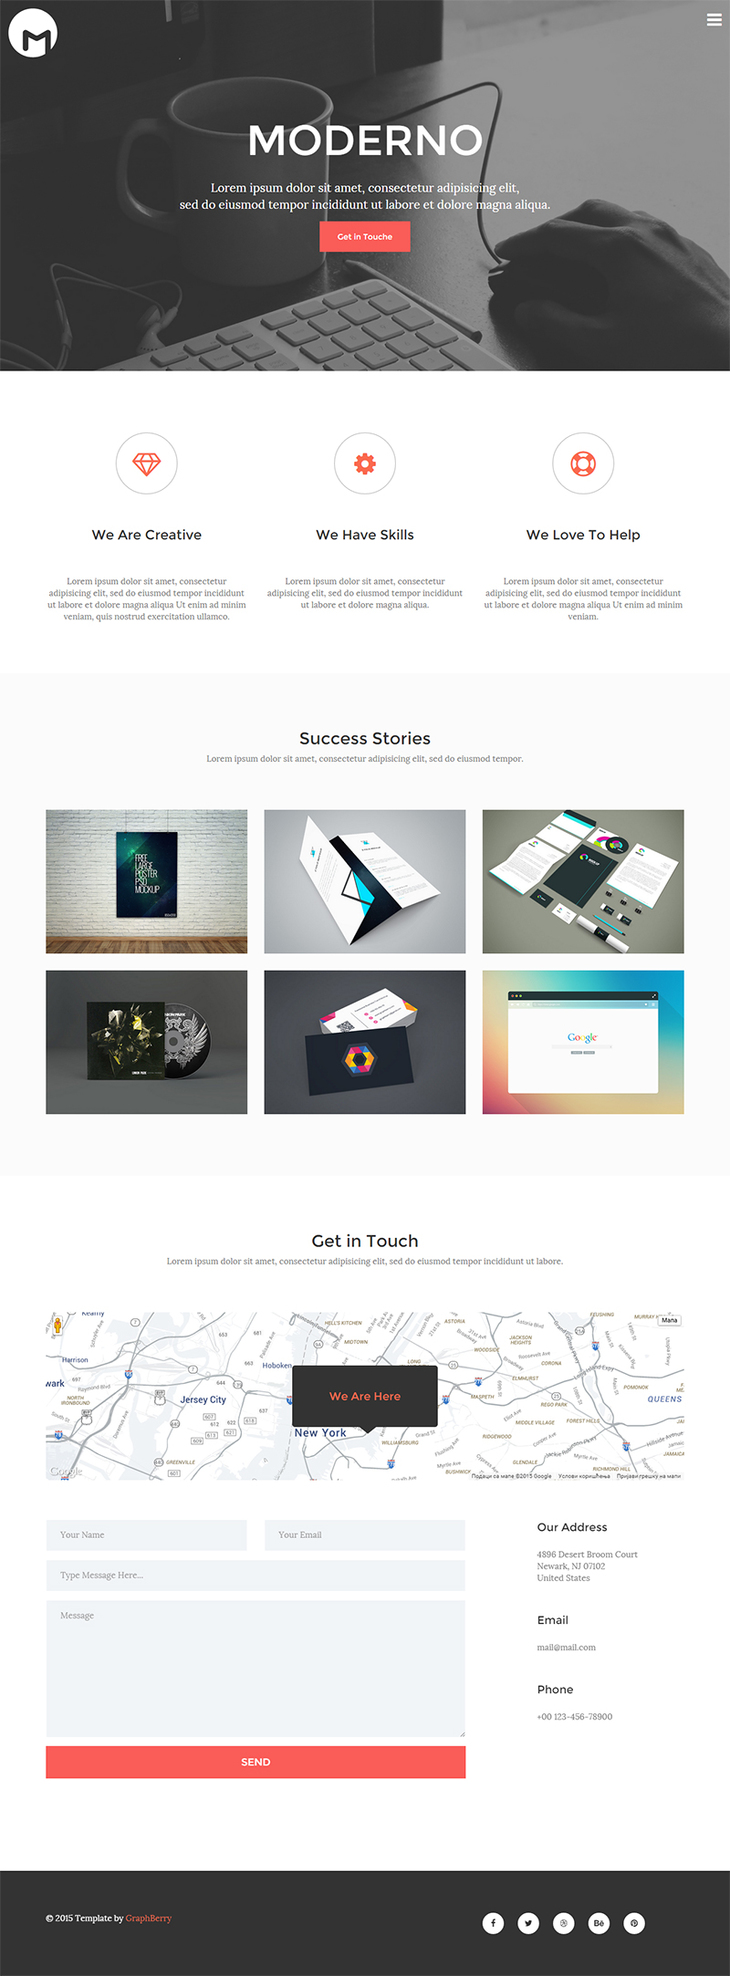 Moderno Free Html5 Responsive Template Graphberry